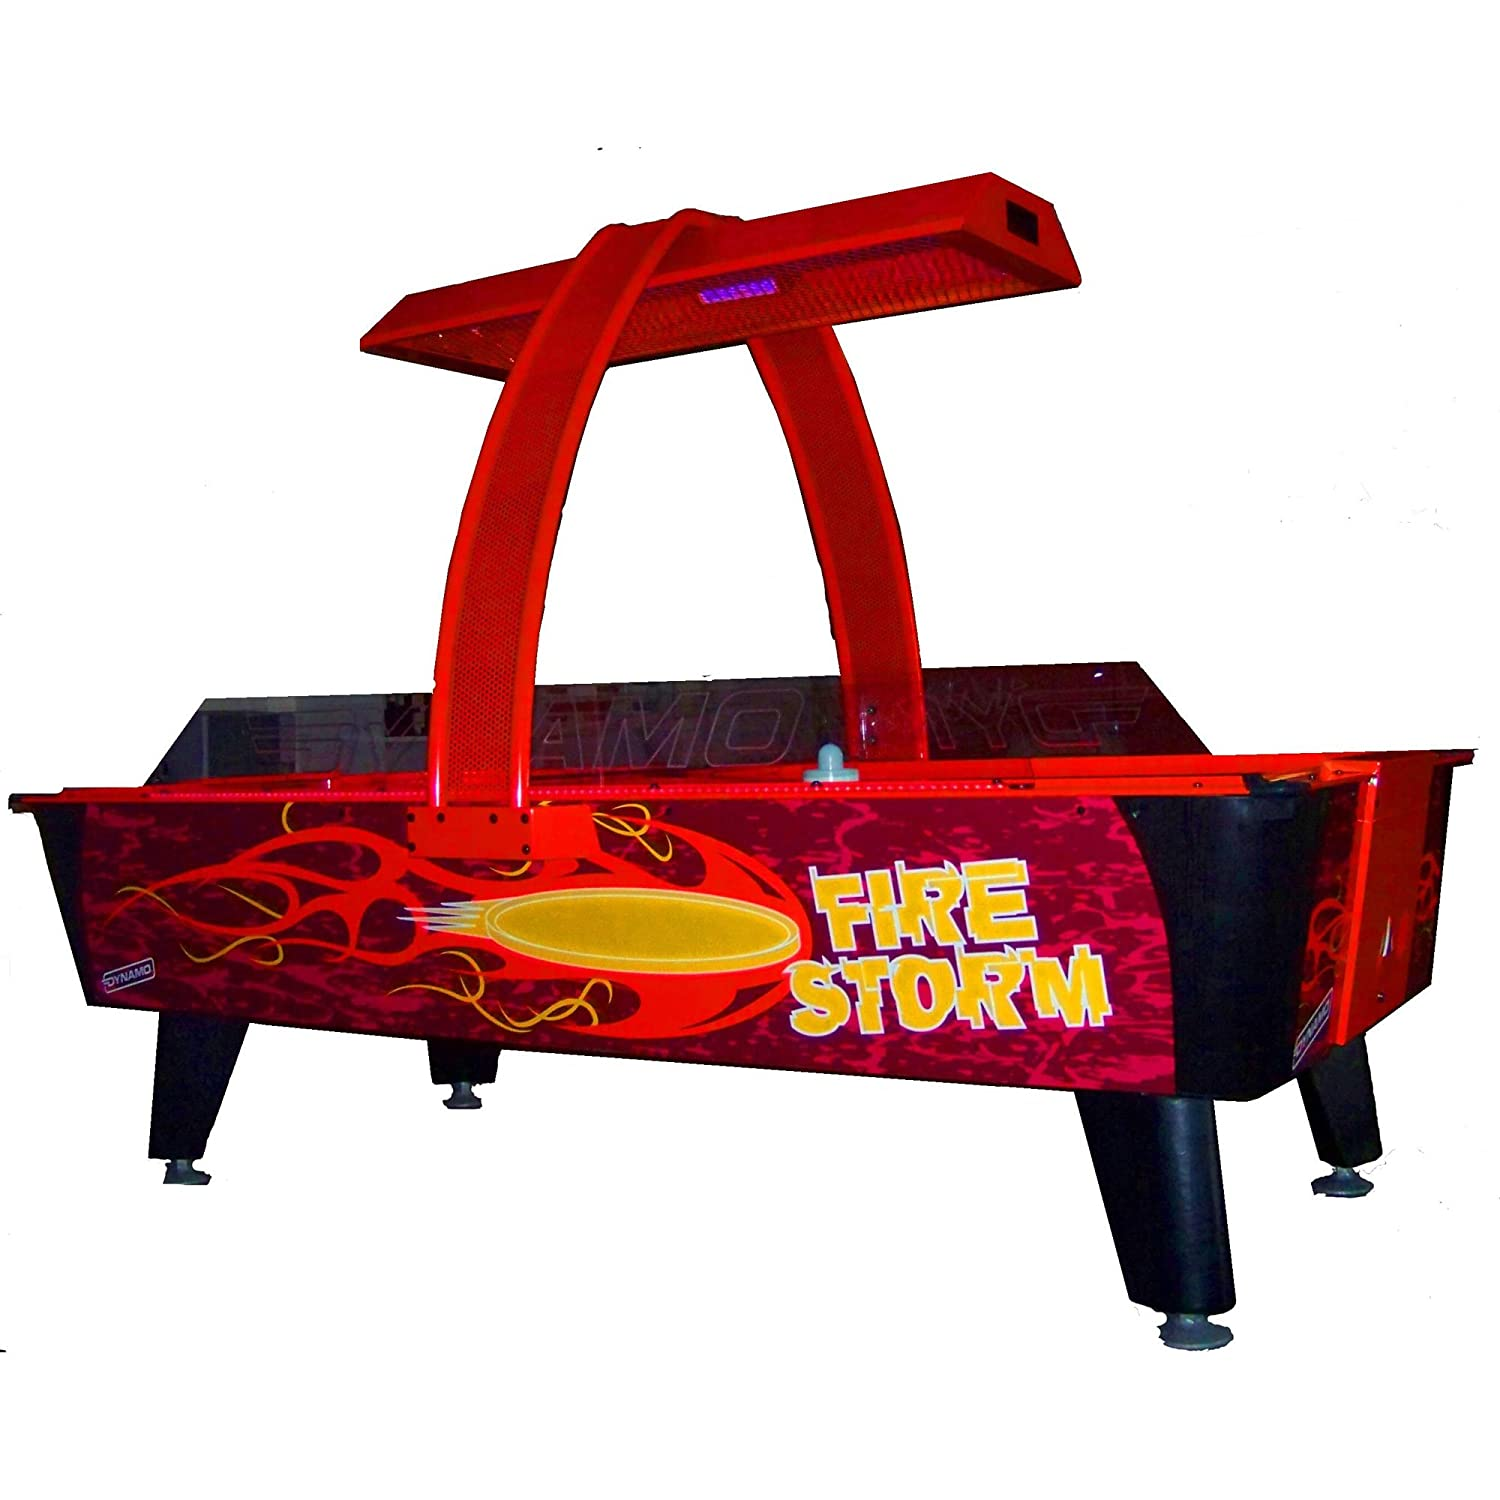 Valley-Dynamo Fire Storm Air Hockey Table